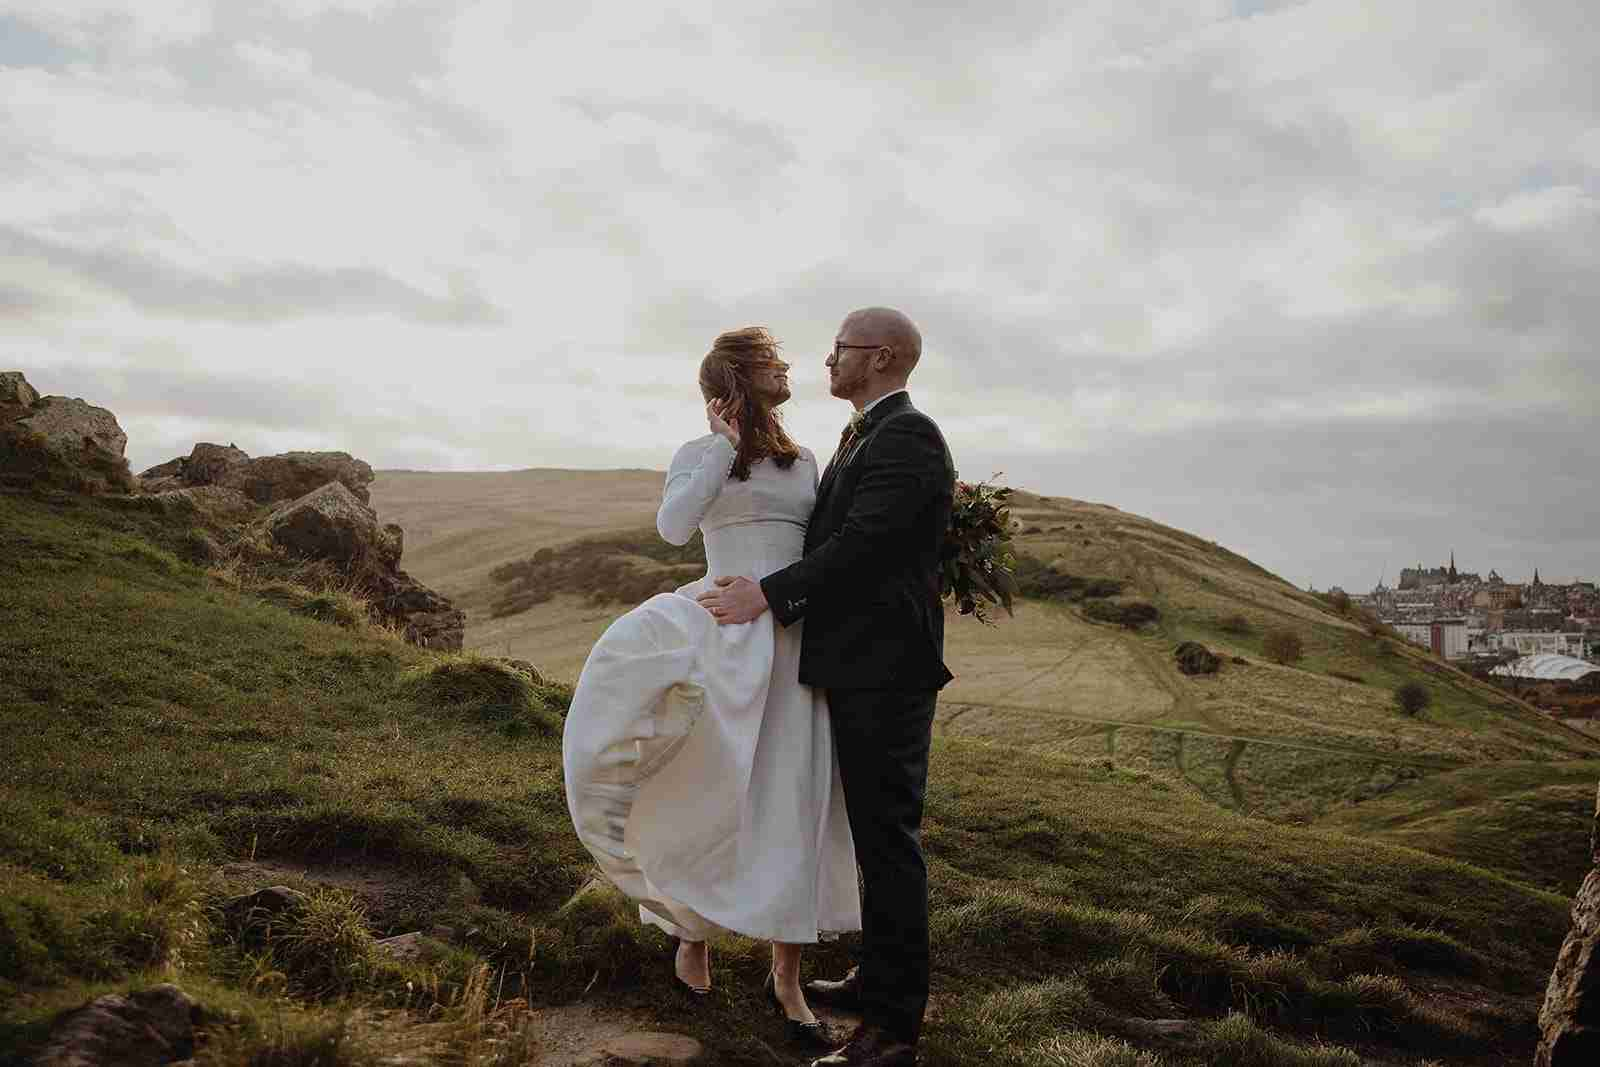 Portrait of a couple eloping in Holyrood Park during a windy day